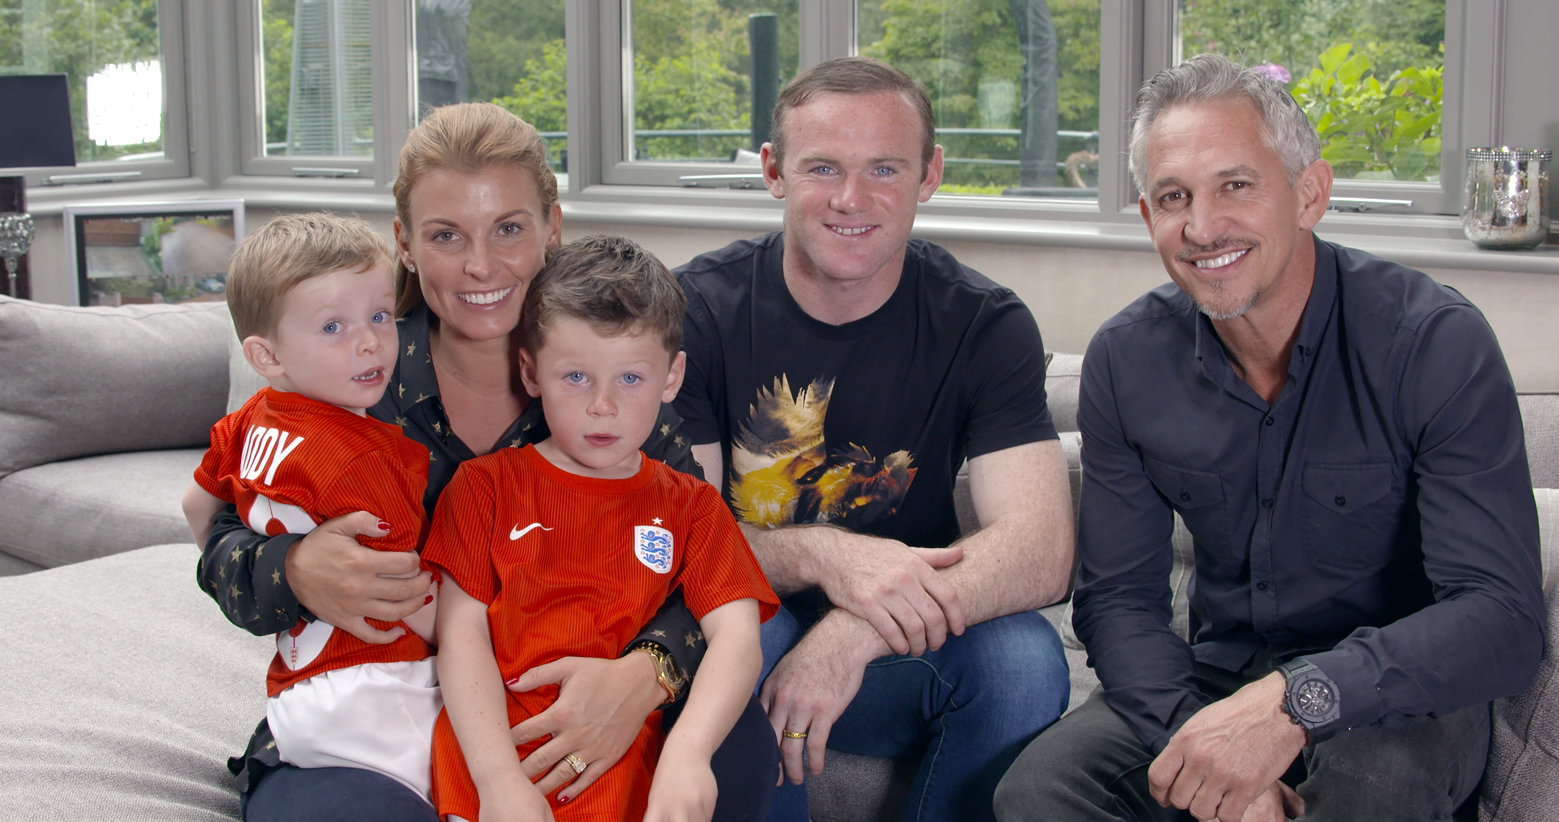 Behind the scenes with England's greatest goalscorer - Wayne Rooney